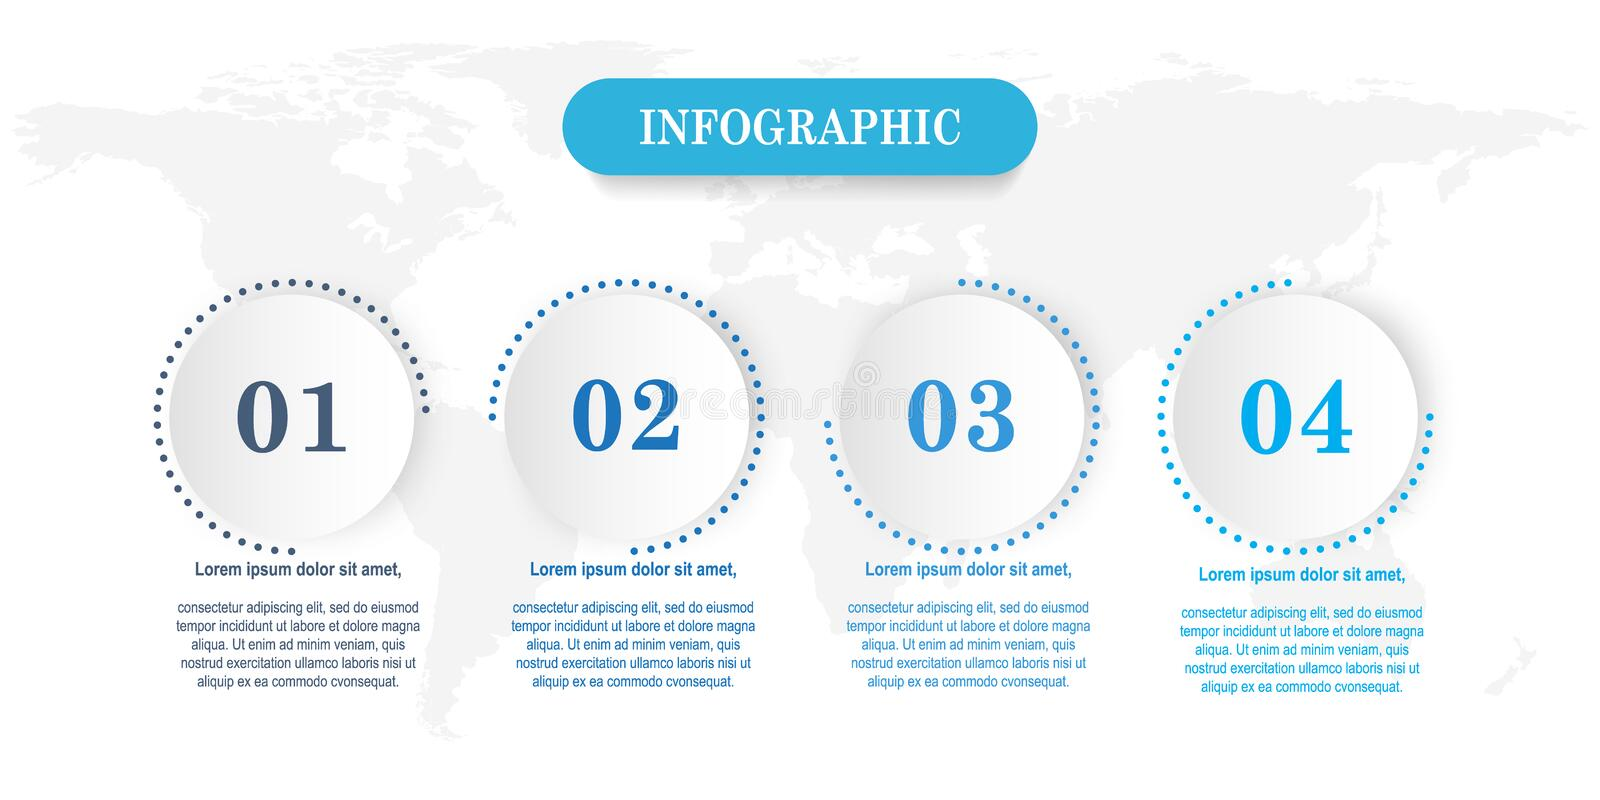 Infographic template with 4 steps business illustration royalty free illustration